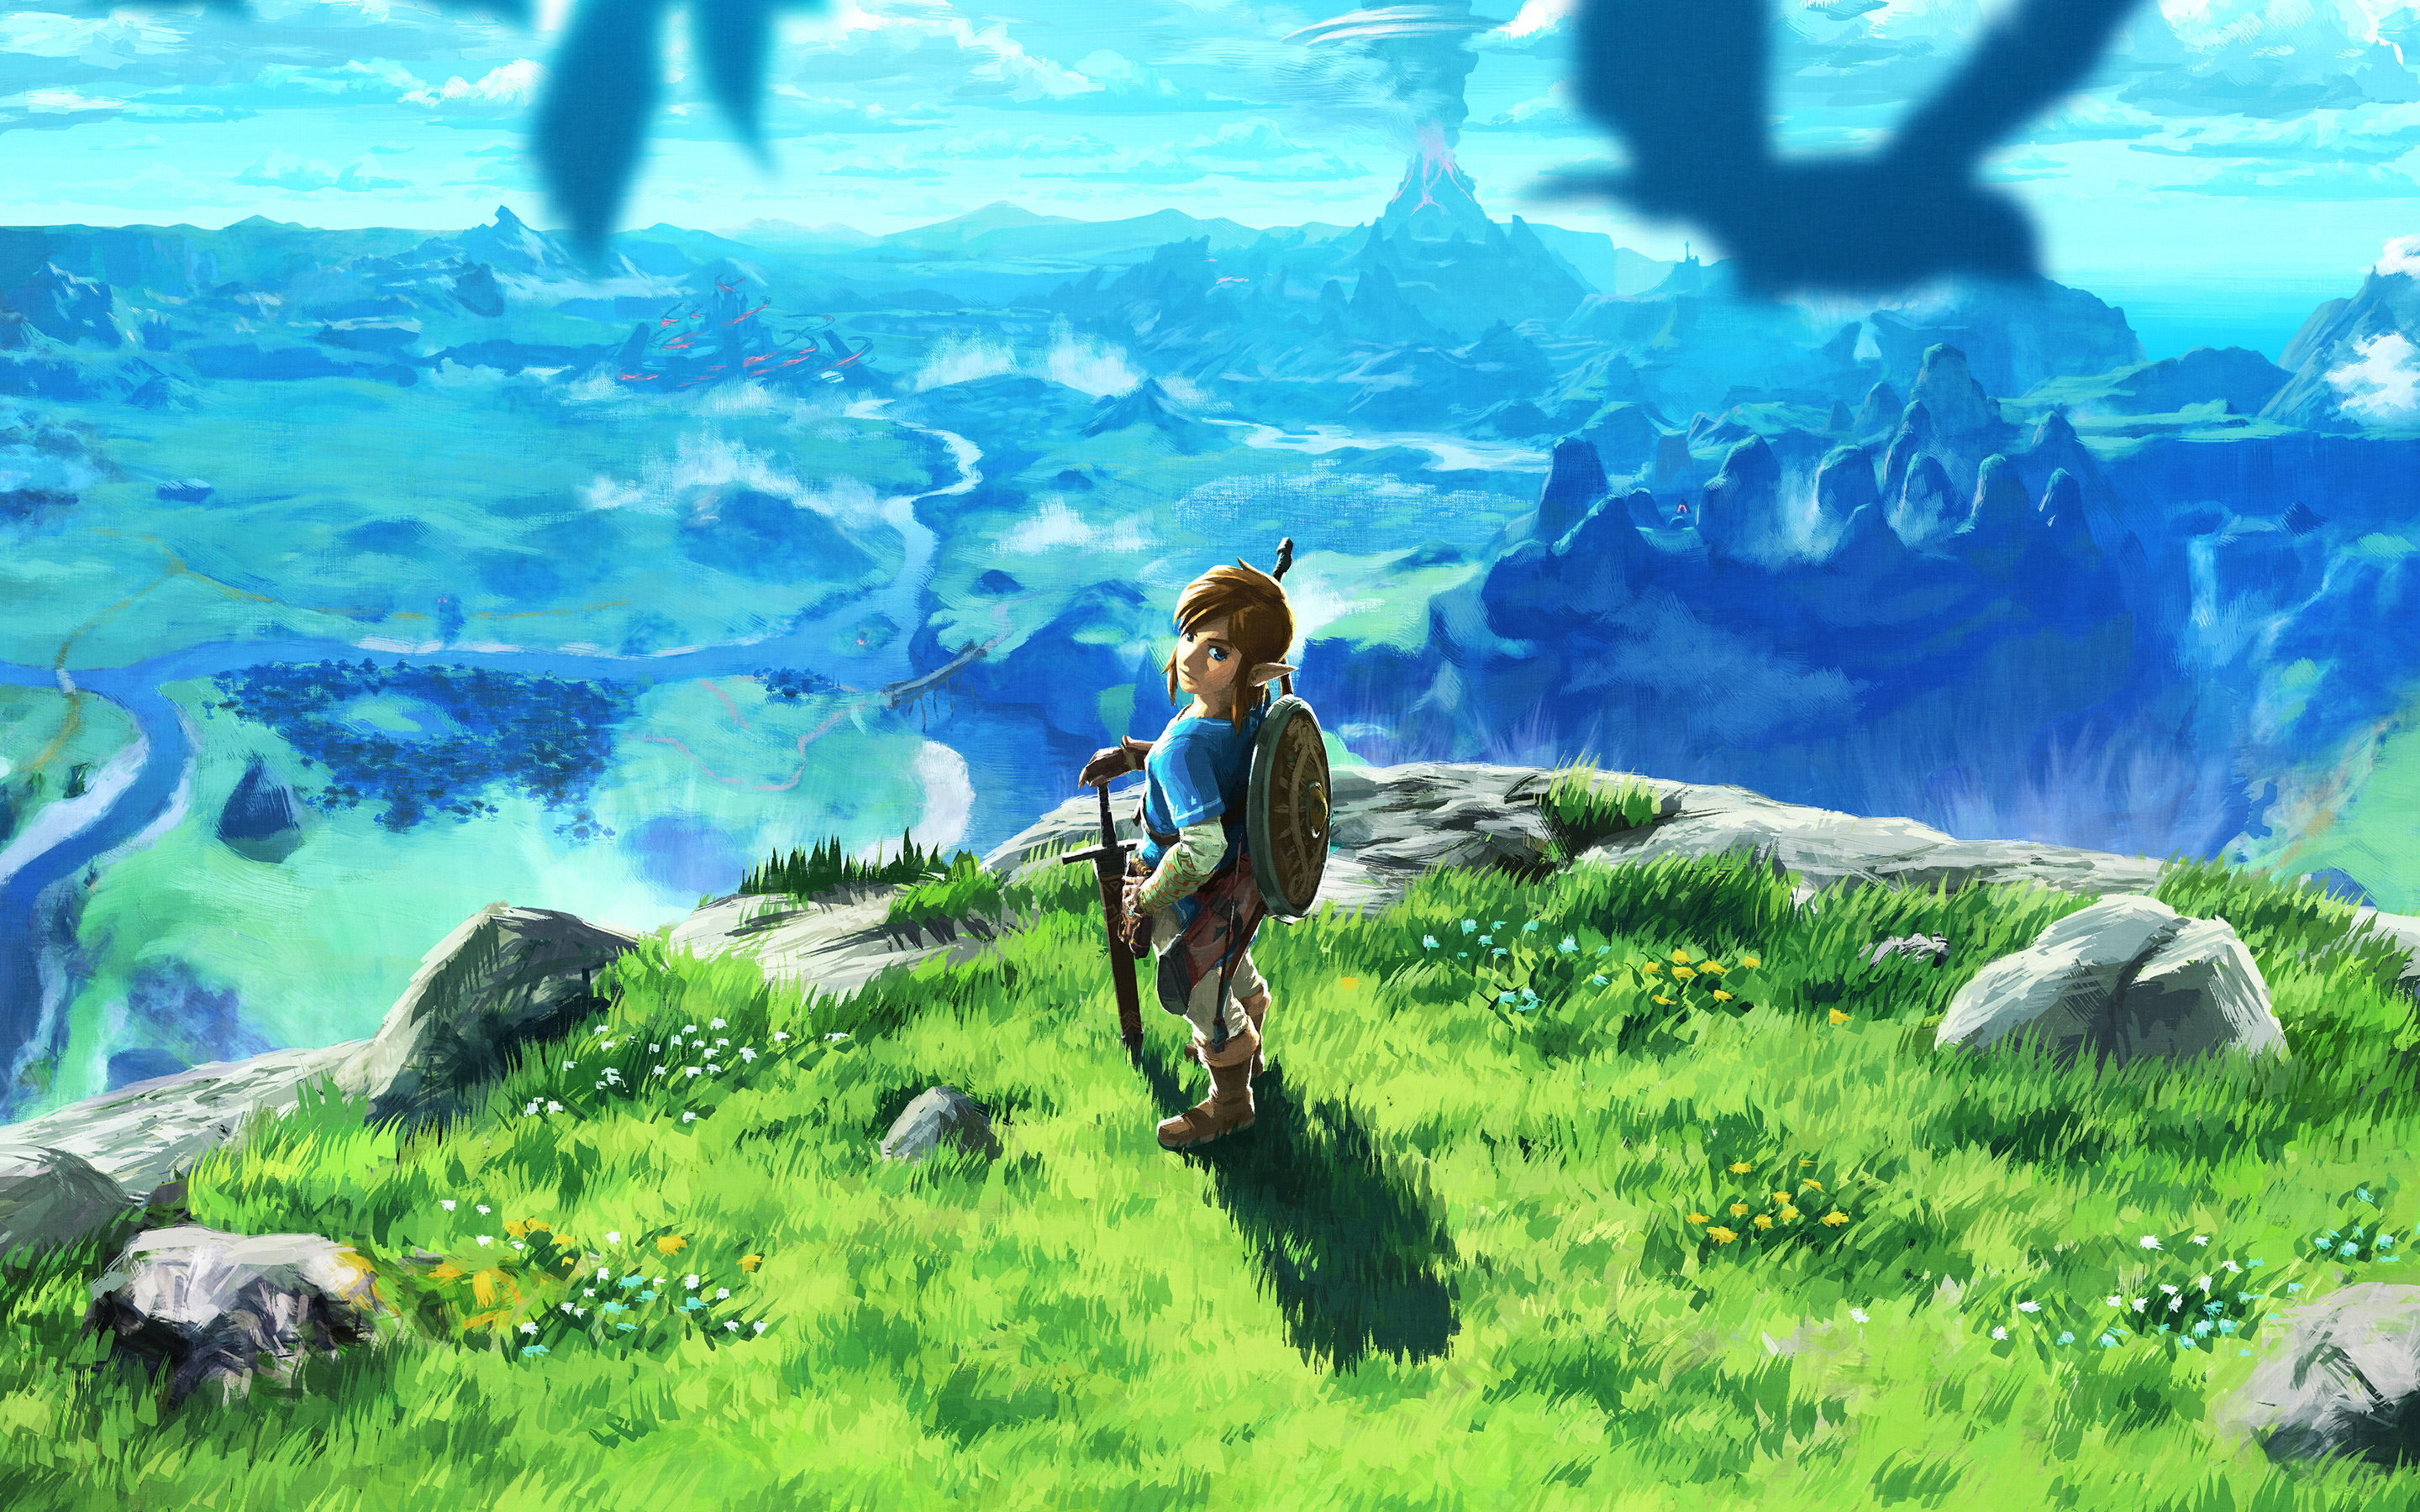 the legend of zelda breath of the wilk 2017 game, hd games, 4k